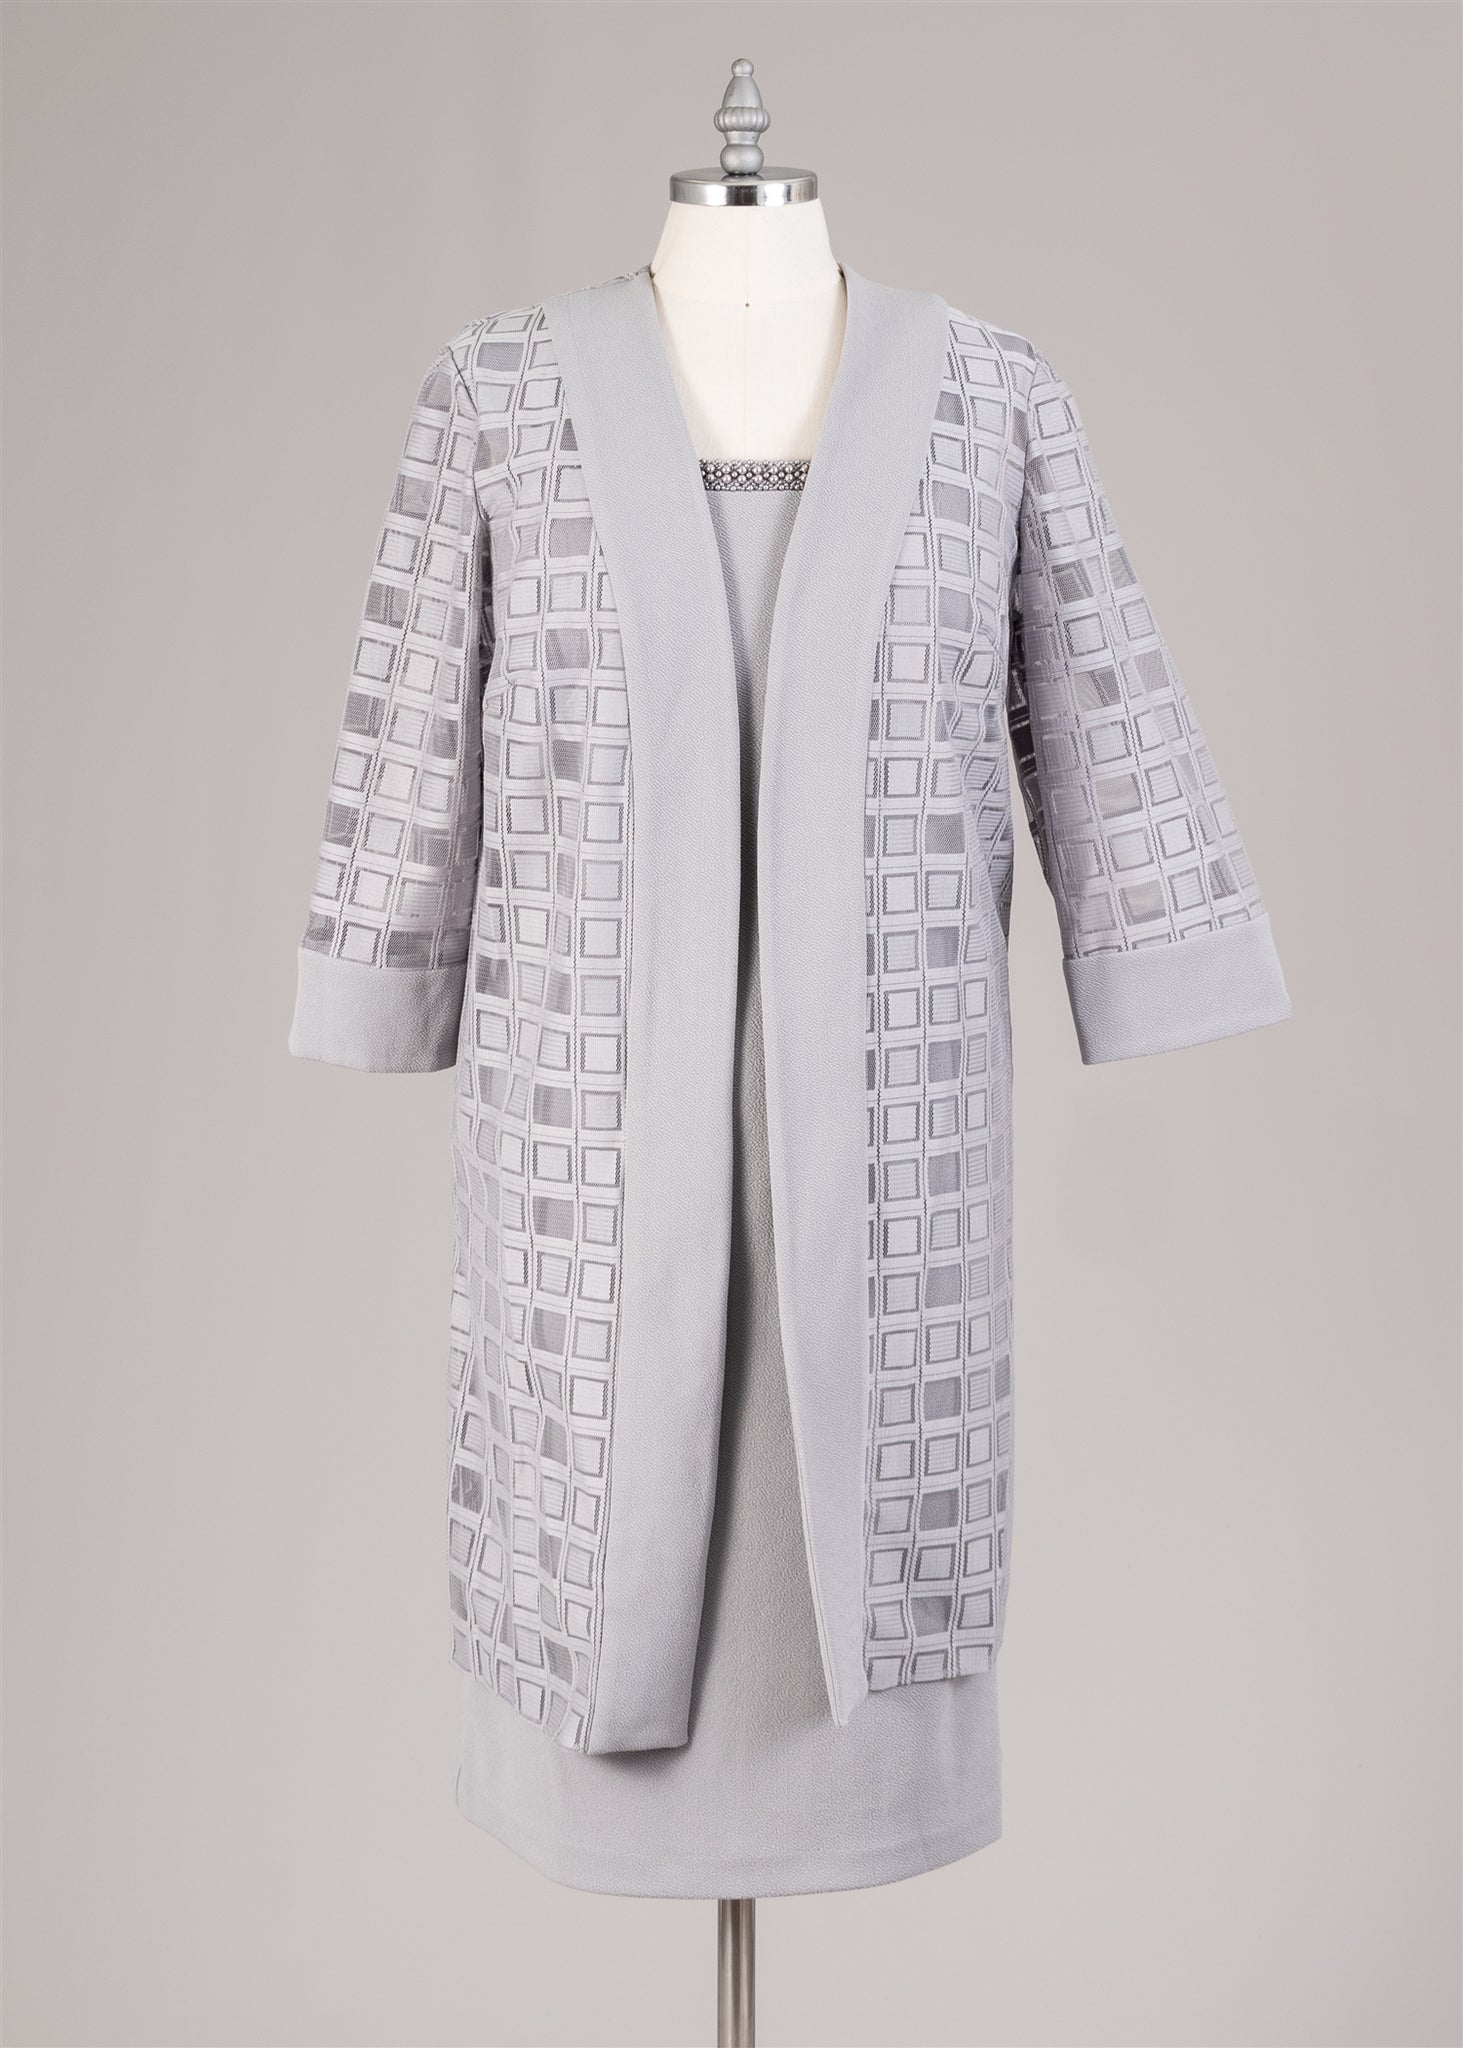 Maya Brook Jacket Dress 29163-Pewter - Church Suits For Less